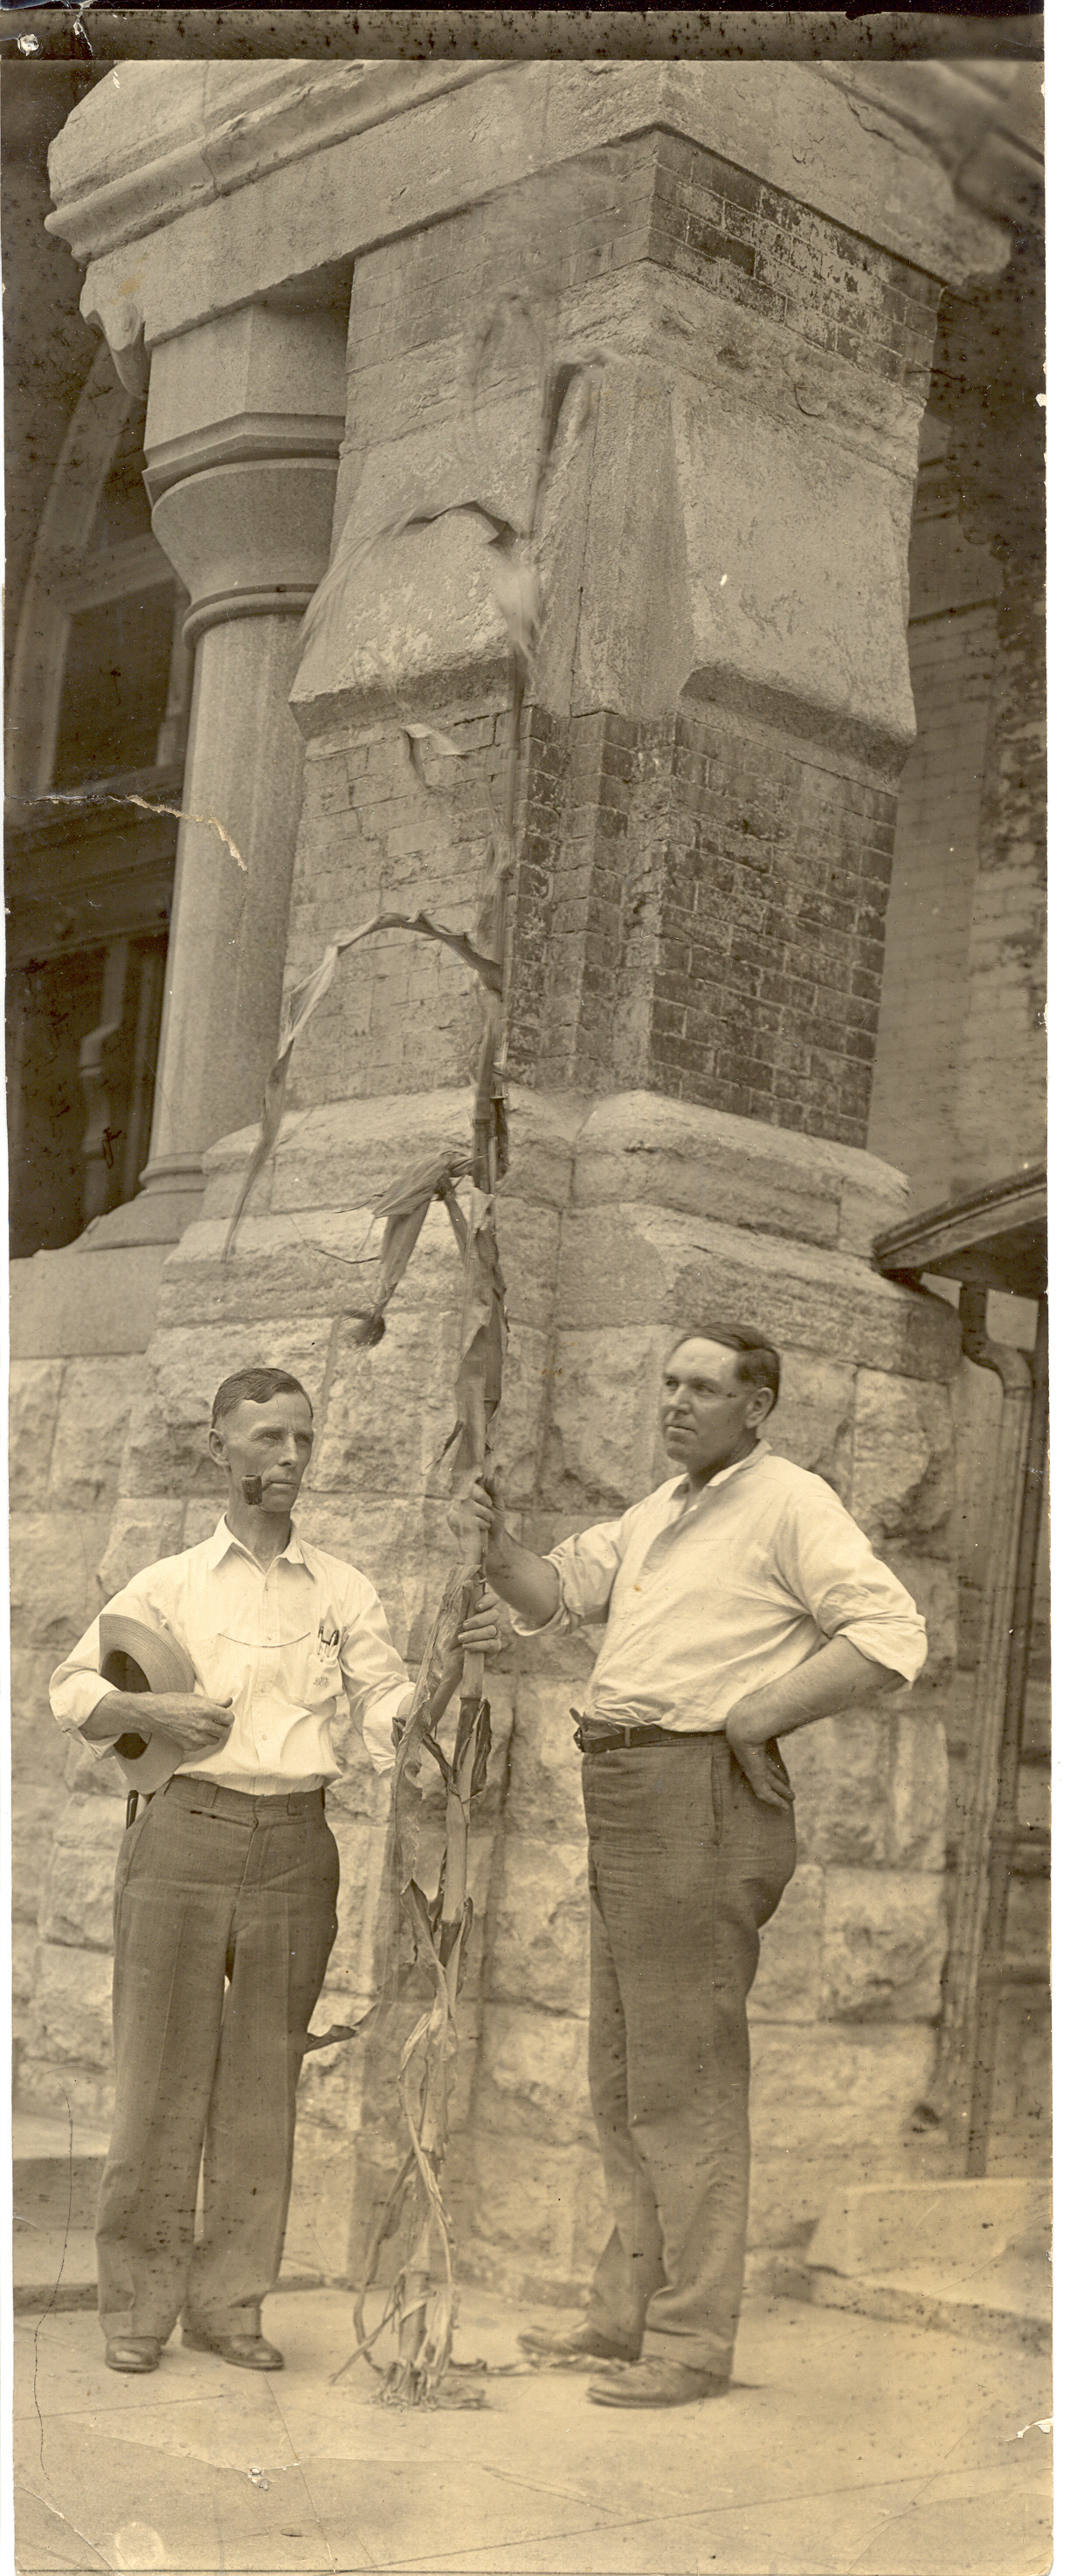 Undated photo with an unidentified man and some tall corn